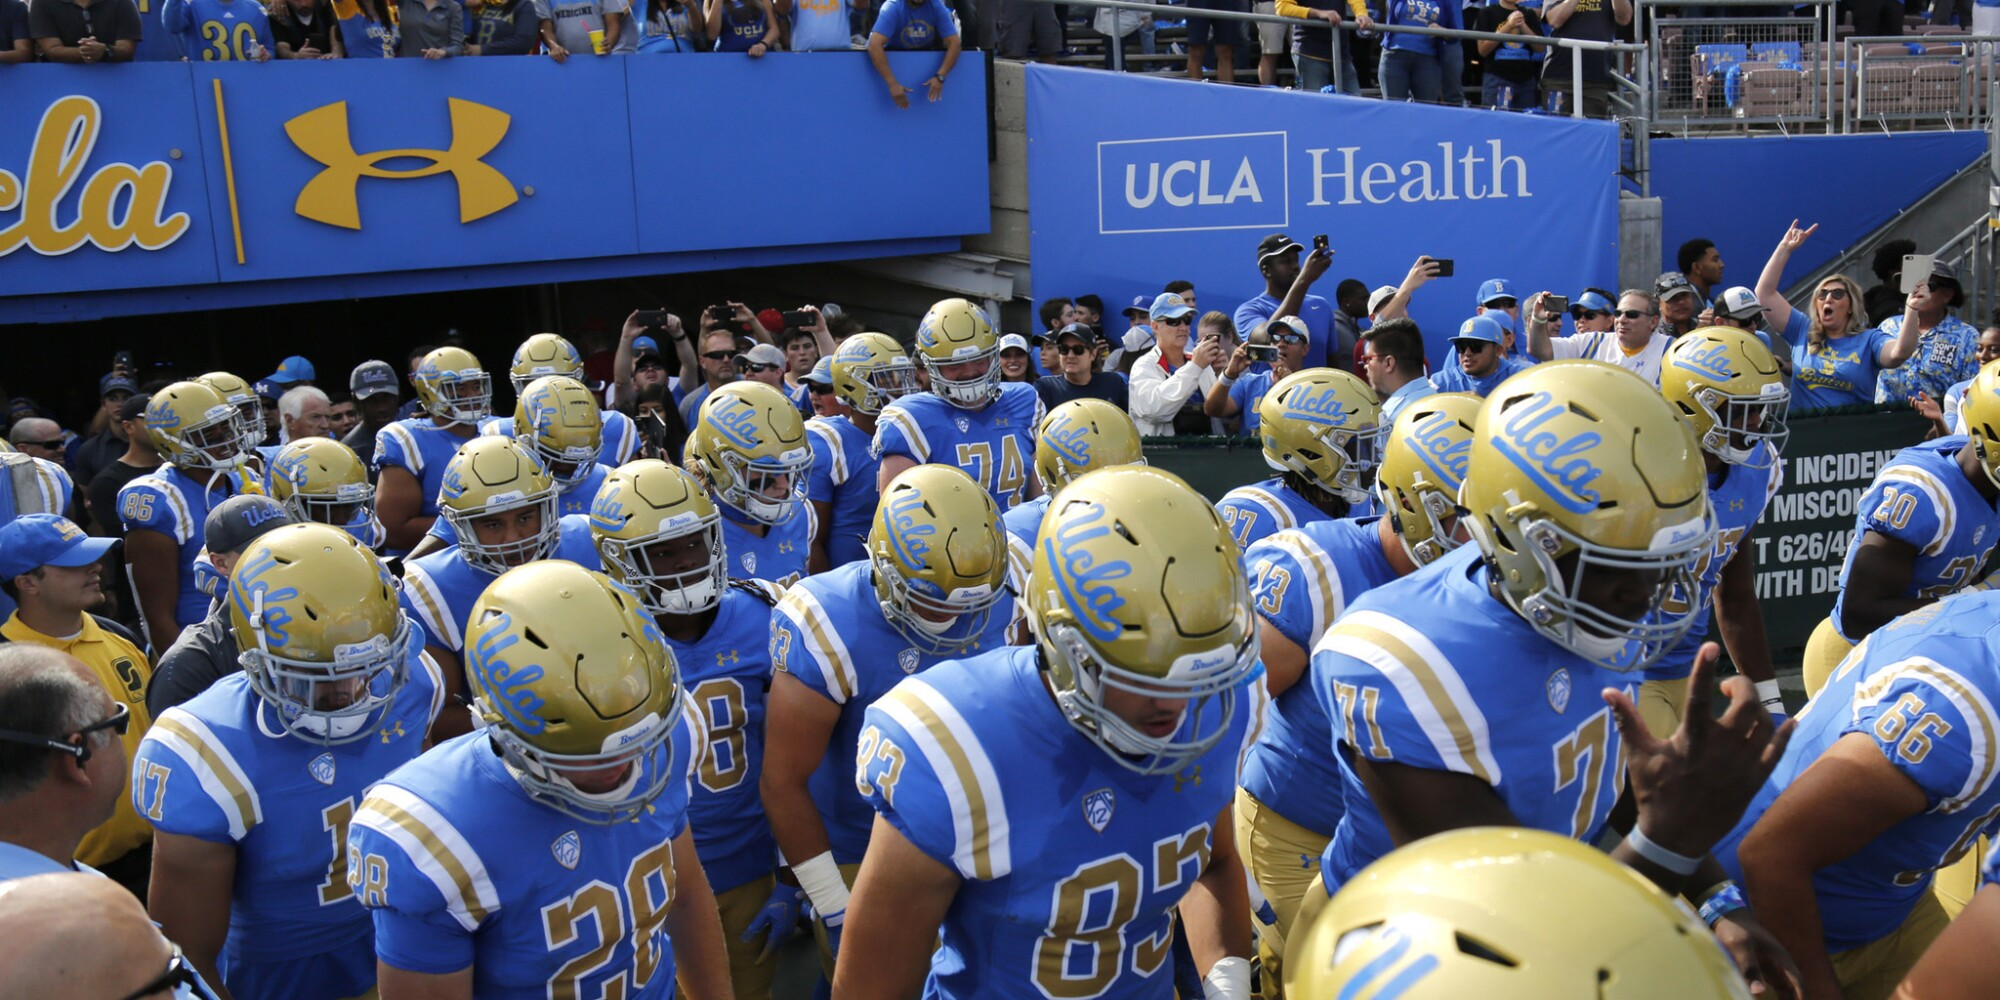 UCLA vs. USC: Bruins prevent Trojans from becoming bowl eligible with 34-27 win